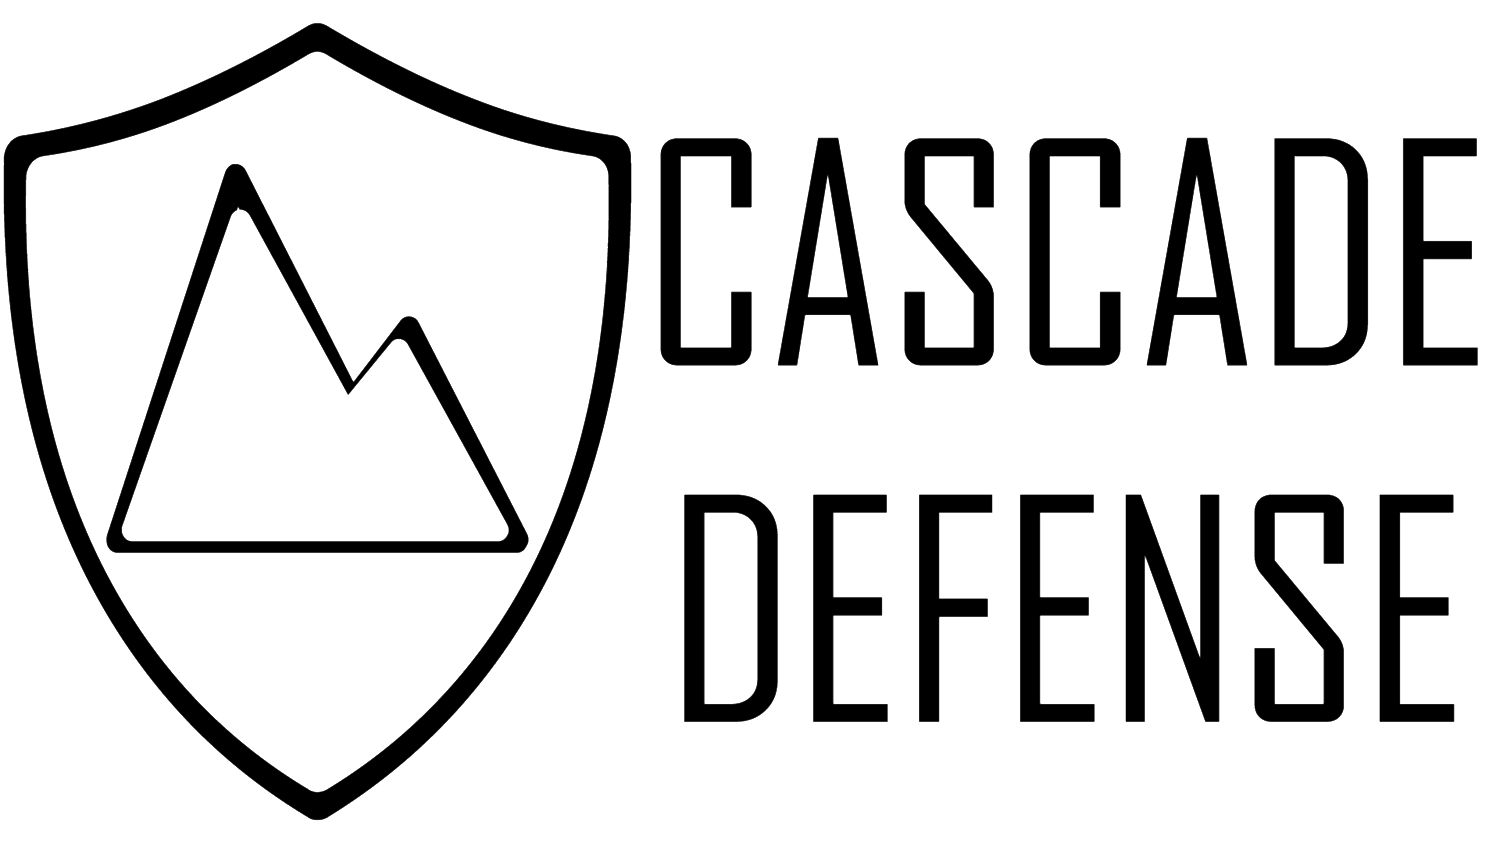 Cascade Defense - Managed Firewall and Security Services